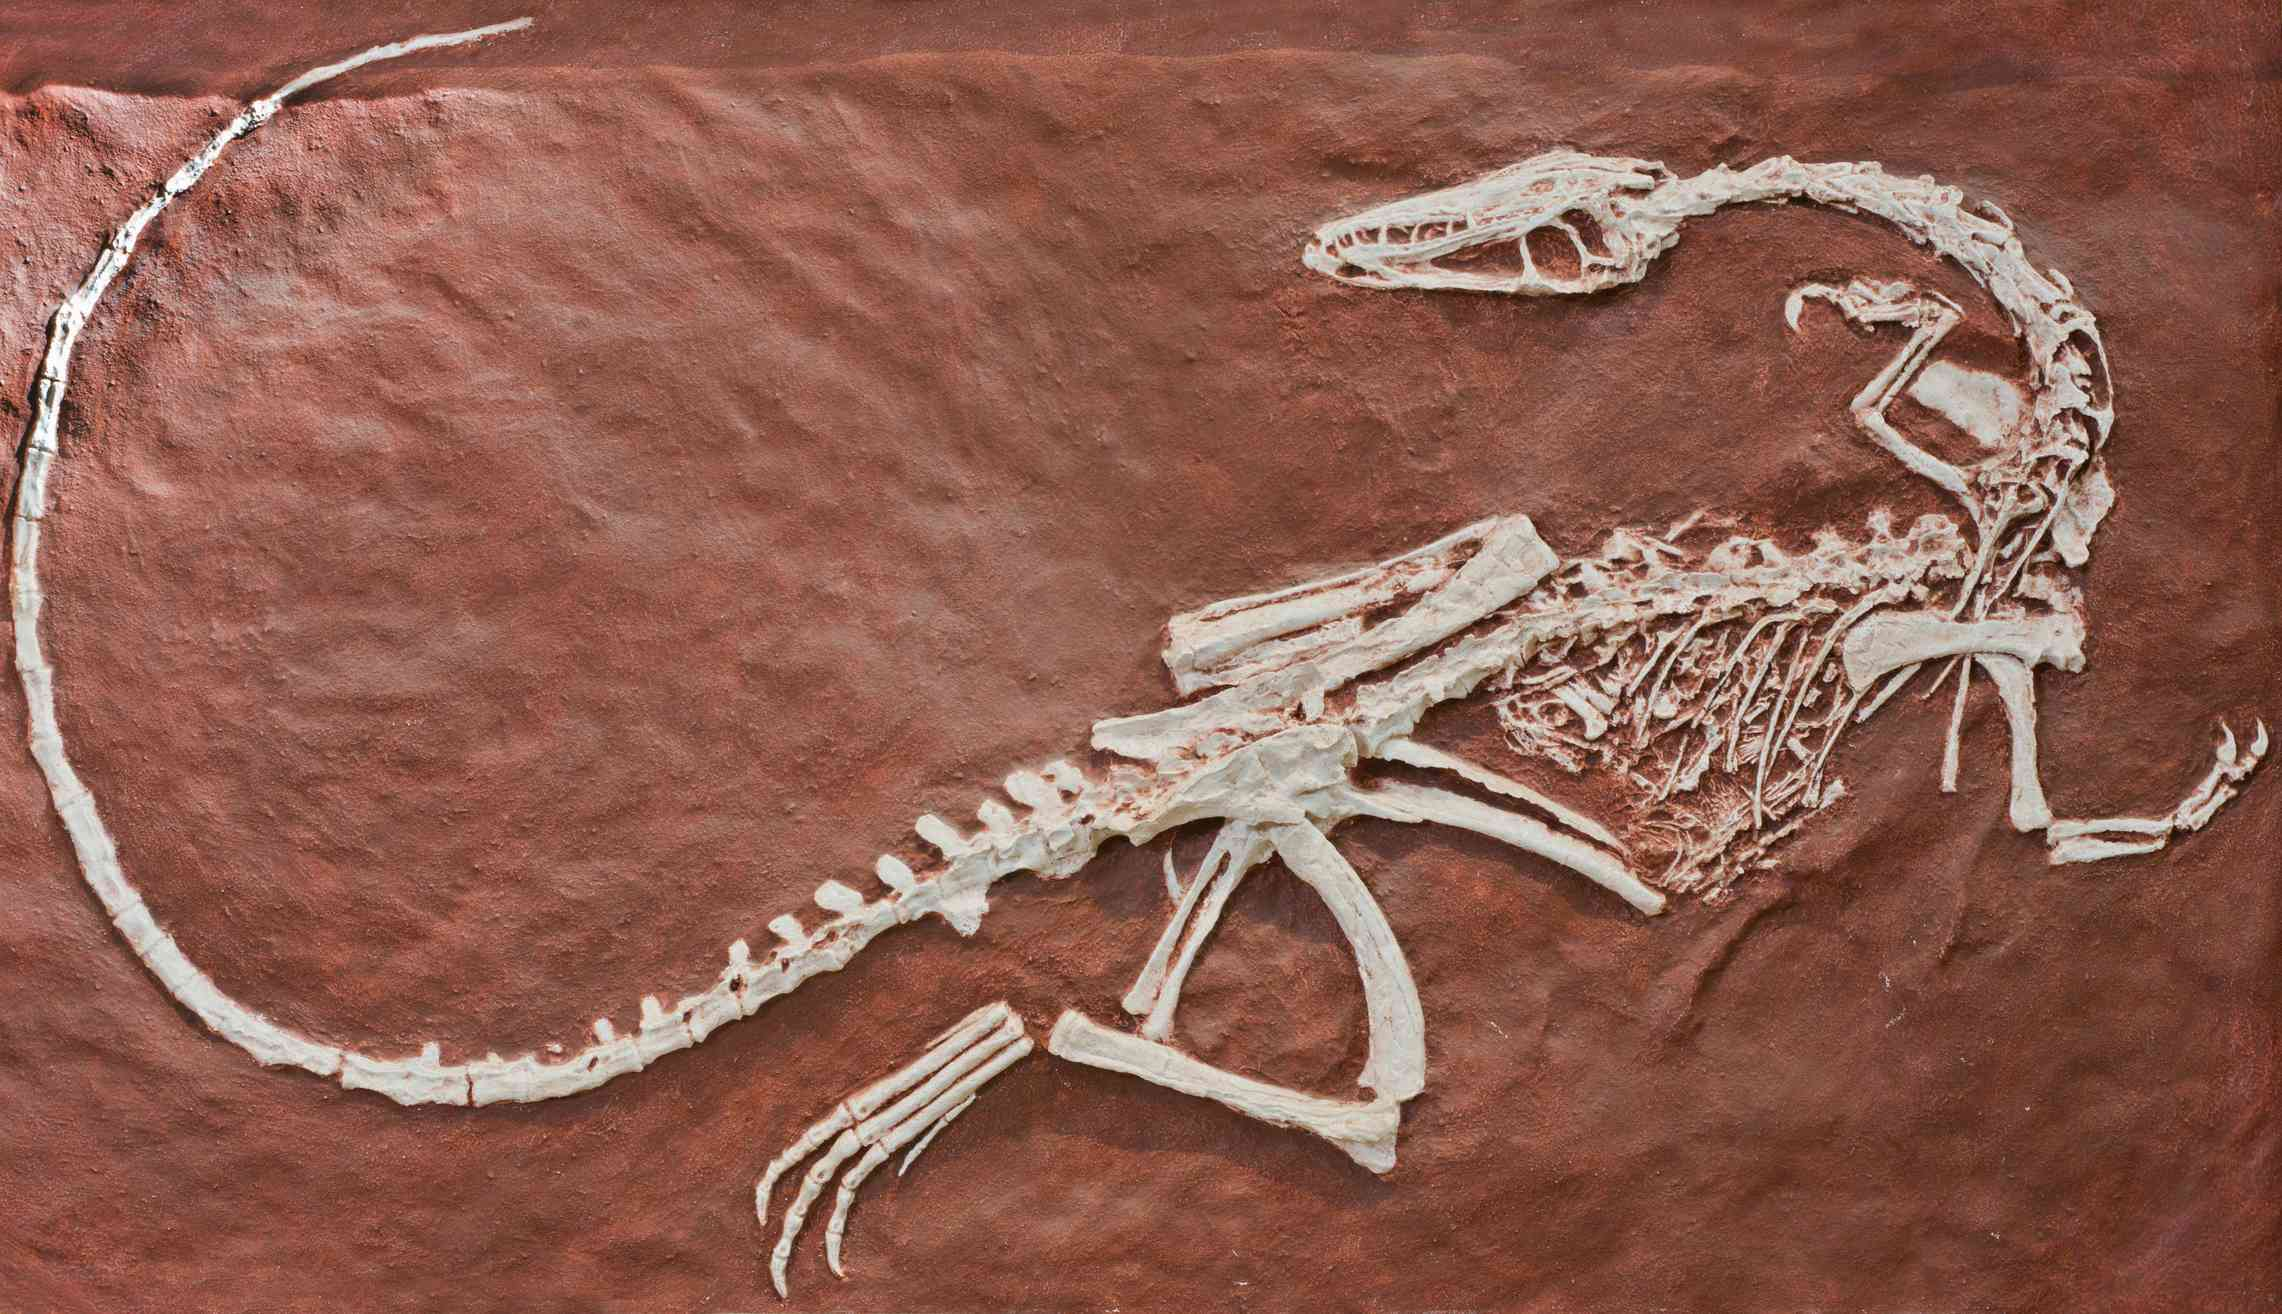 Fossil of the dinosaur Coelophysis